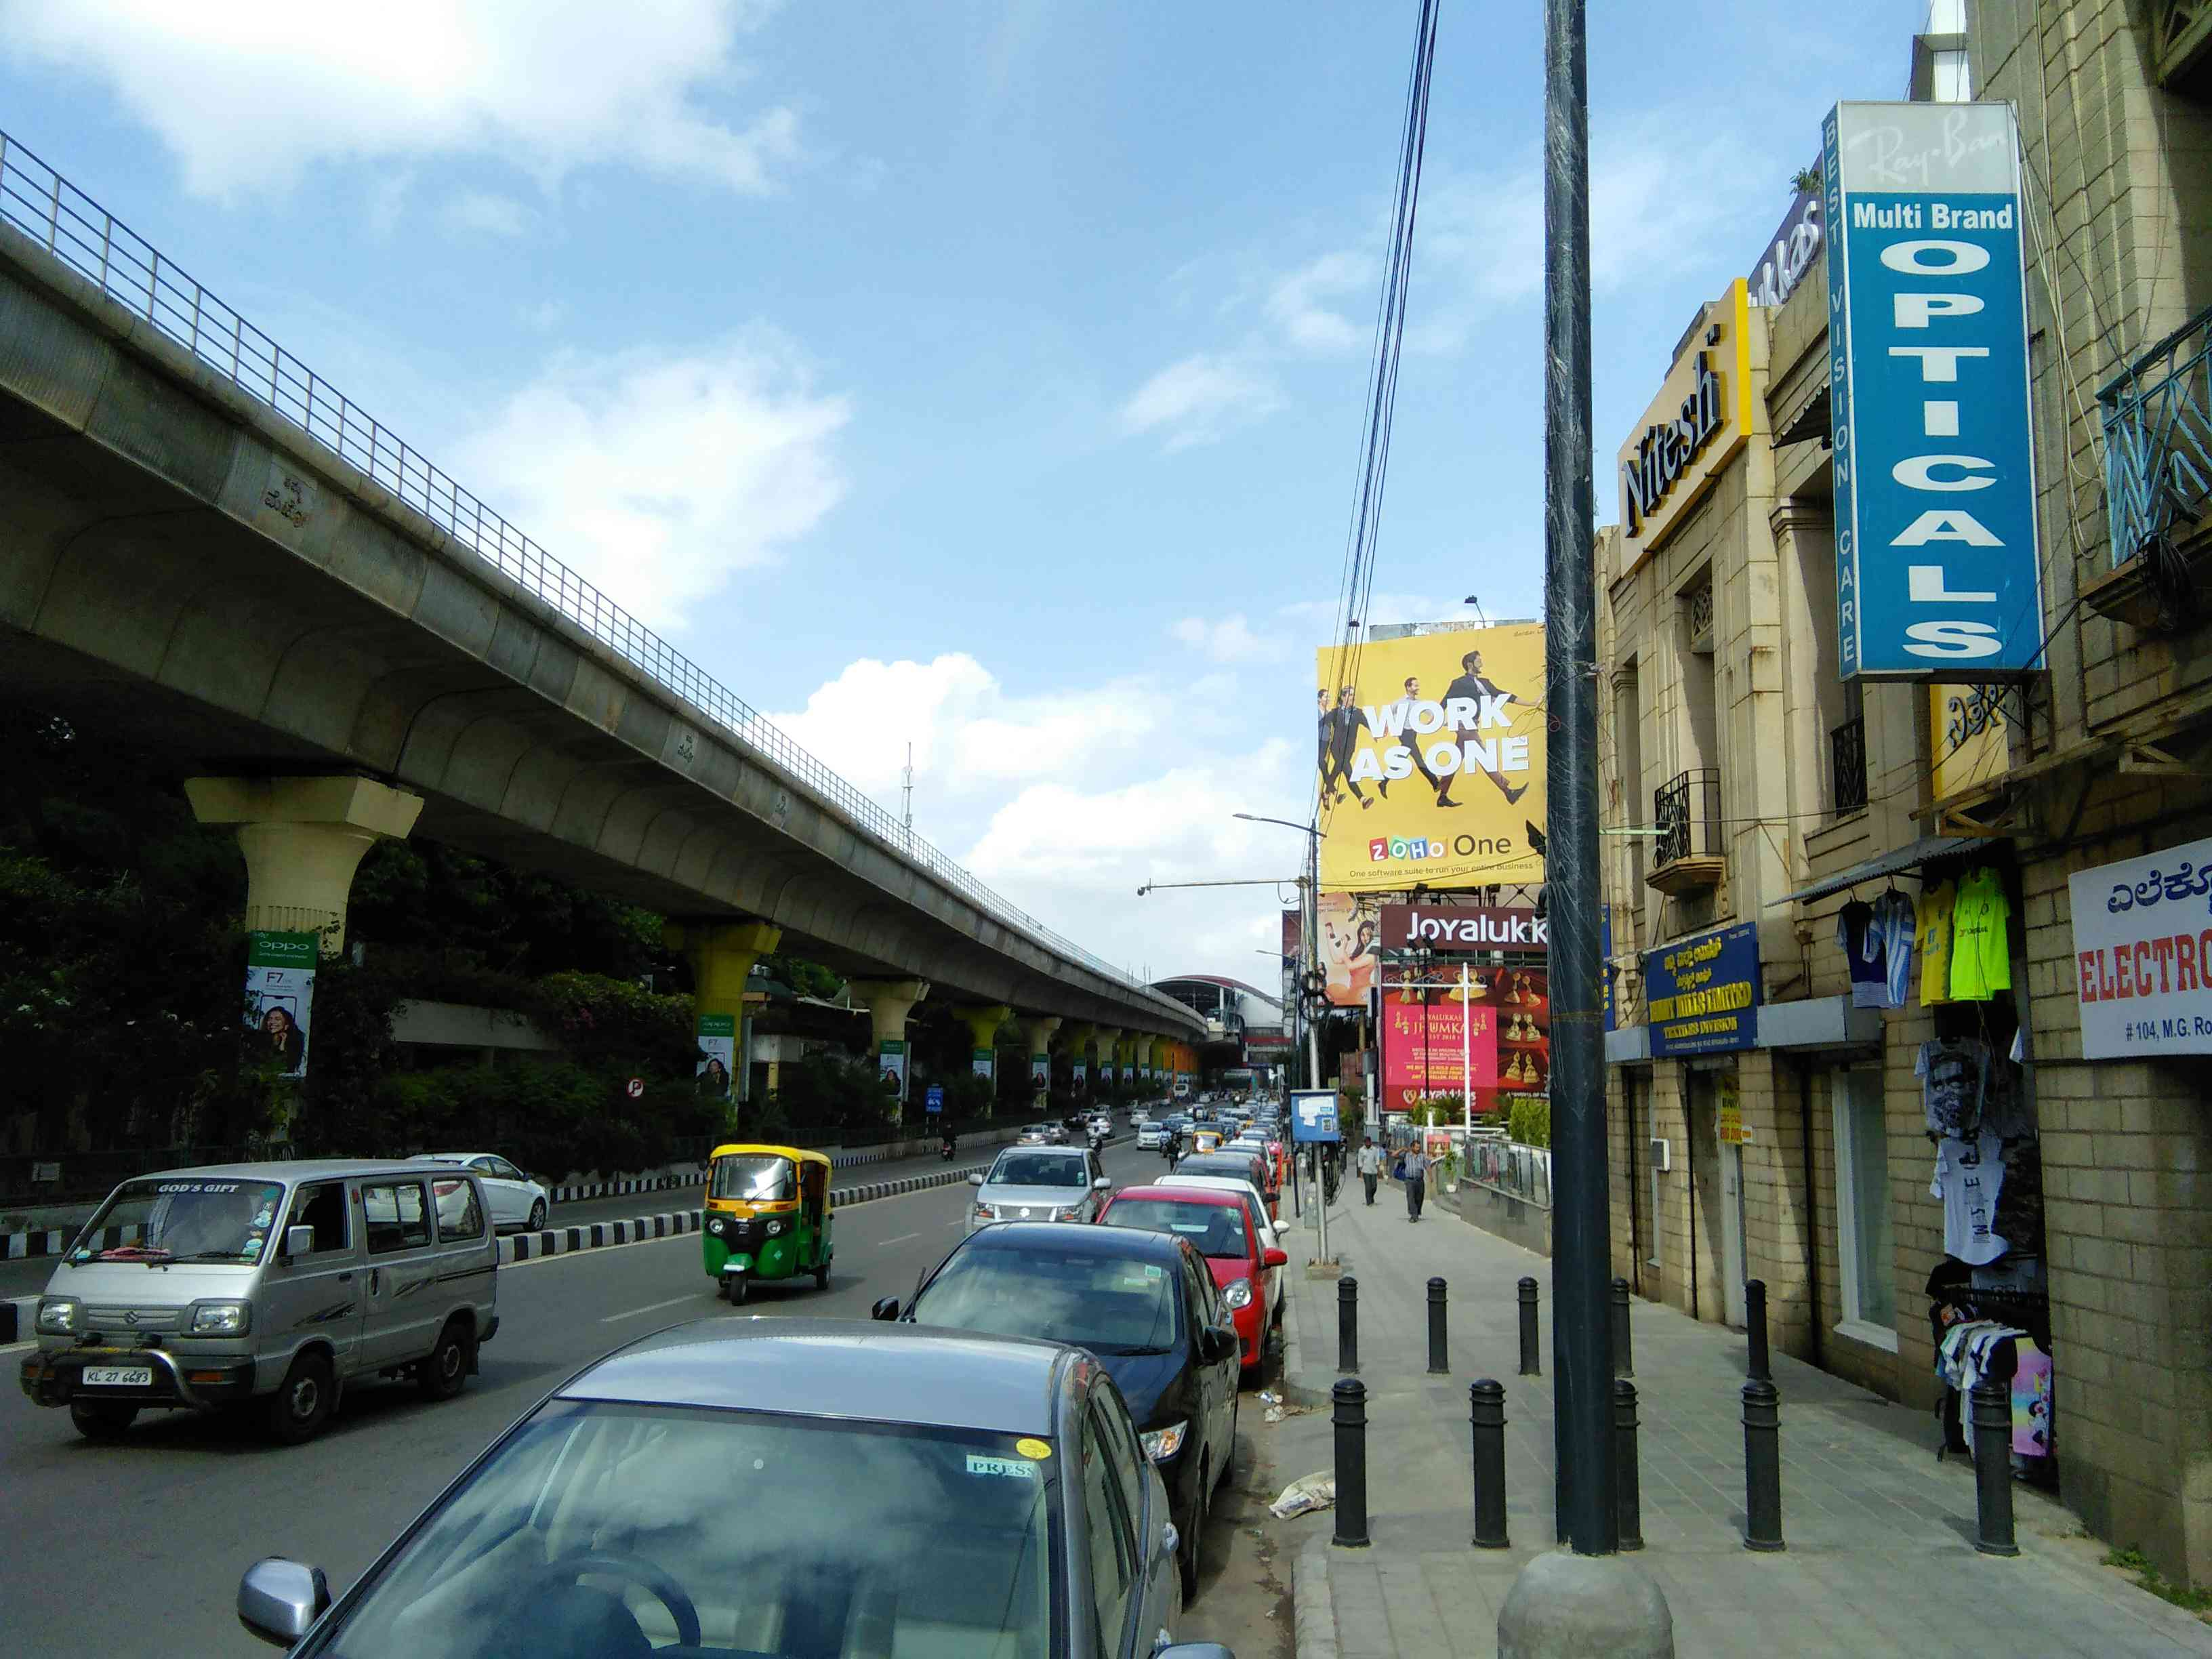 MG Road, June 2018